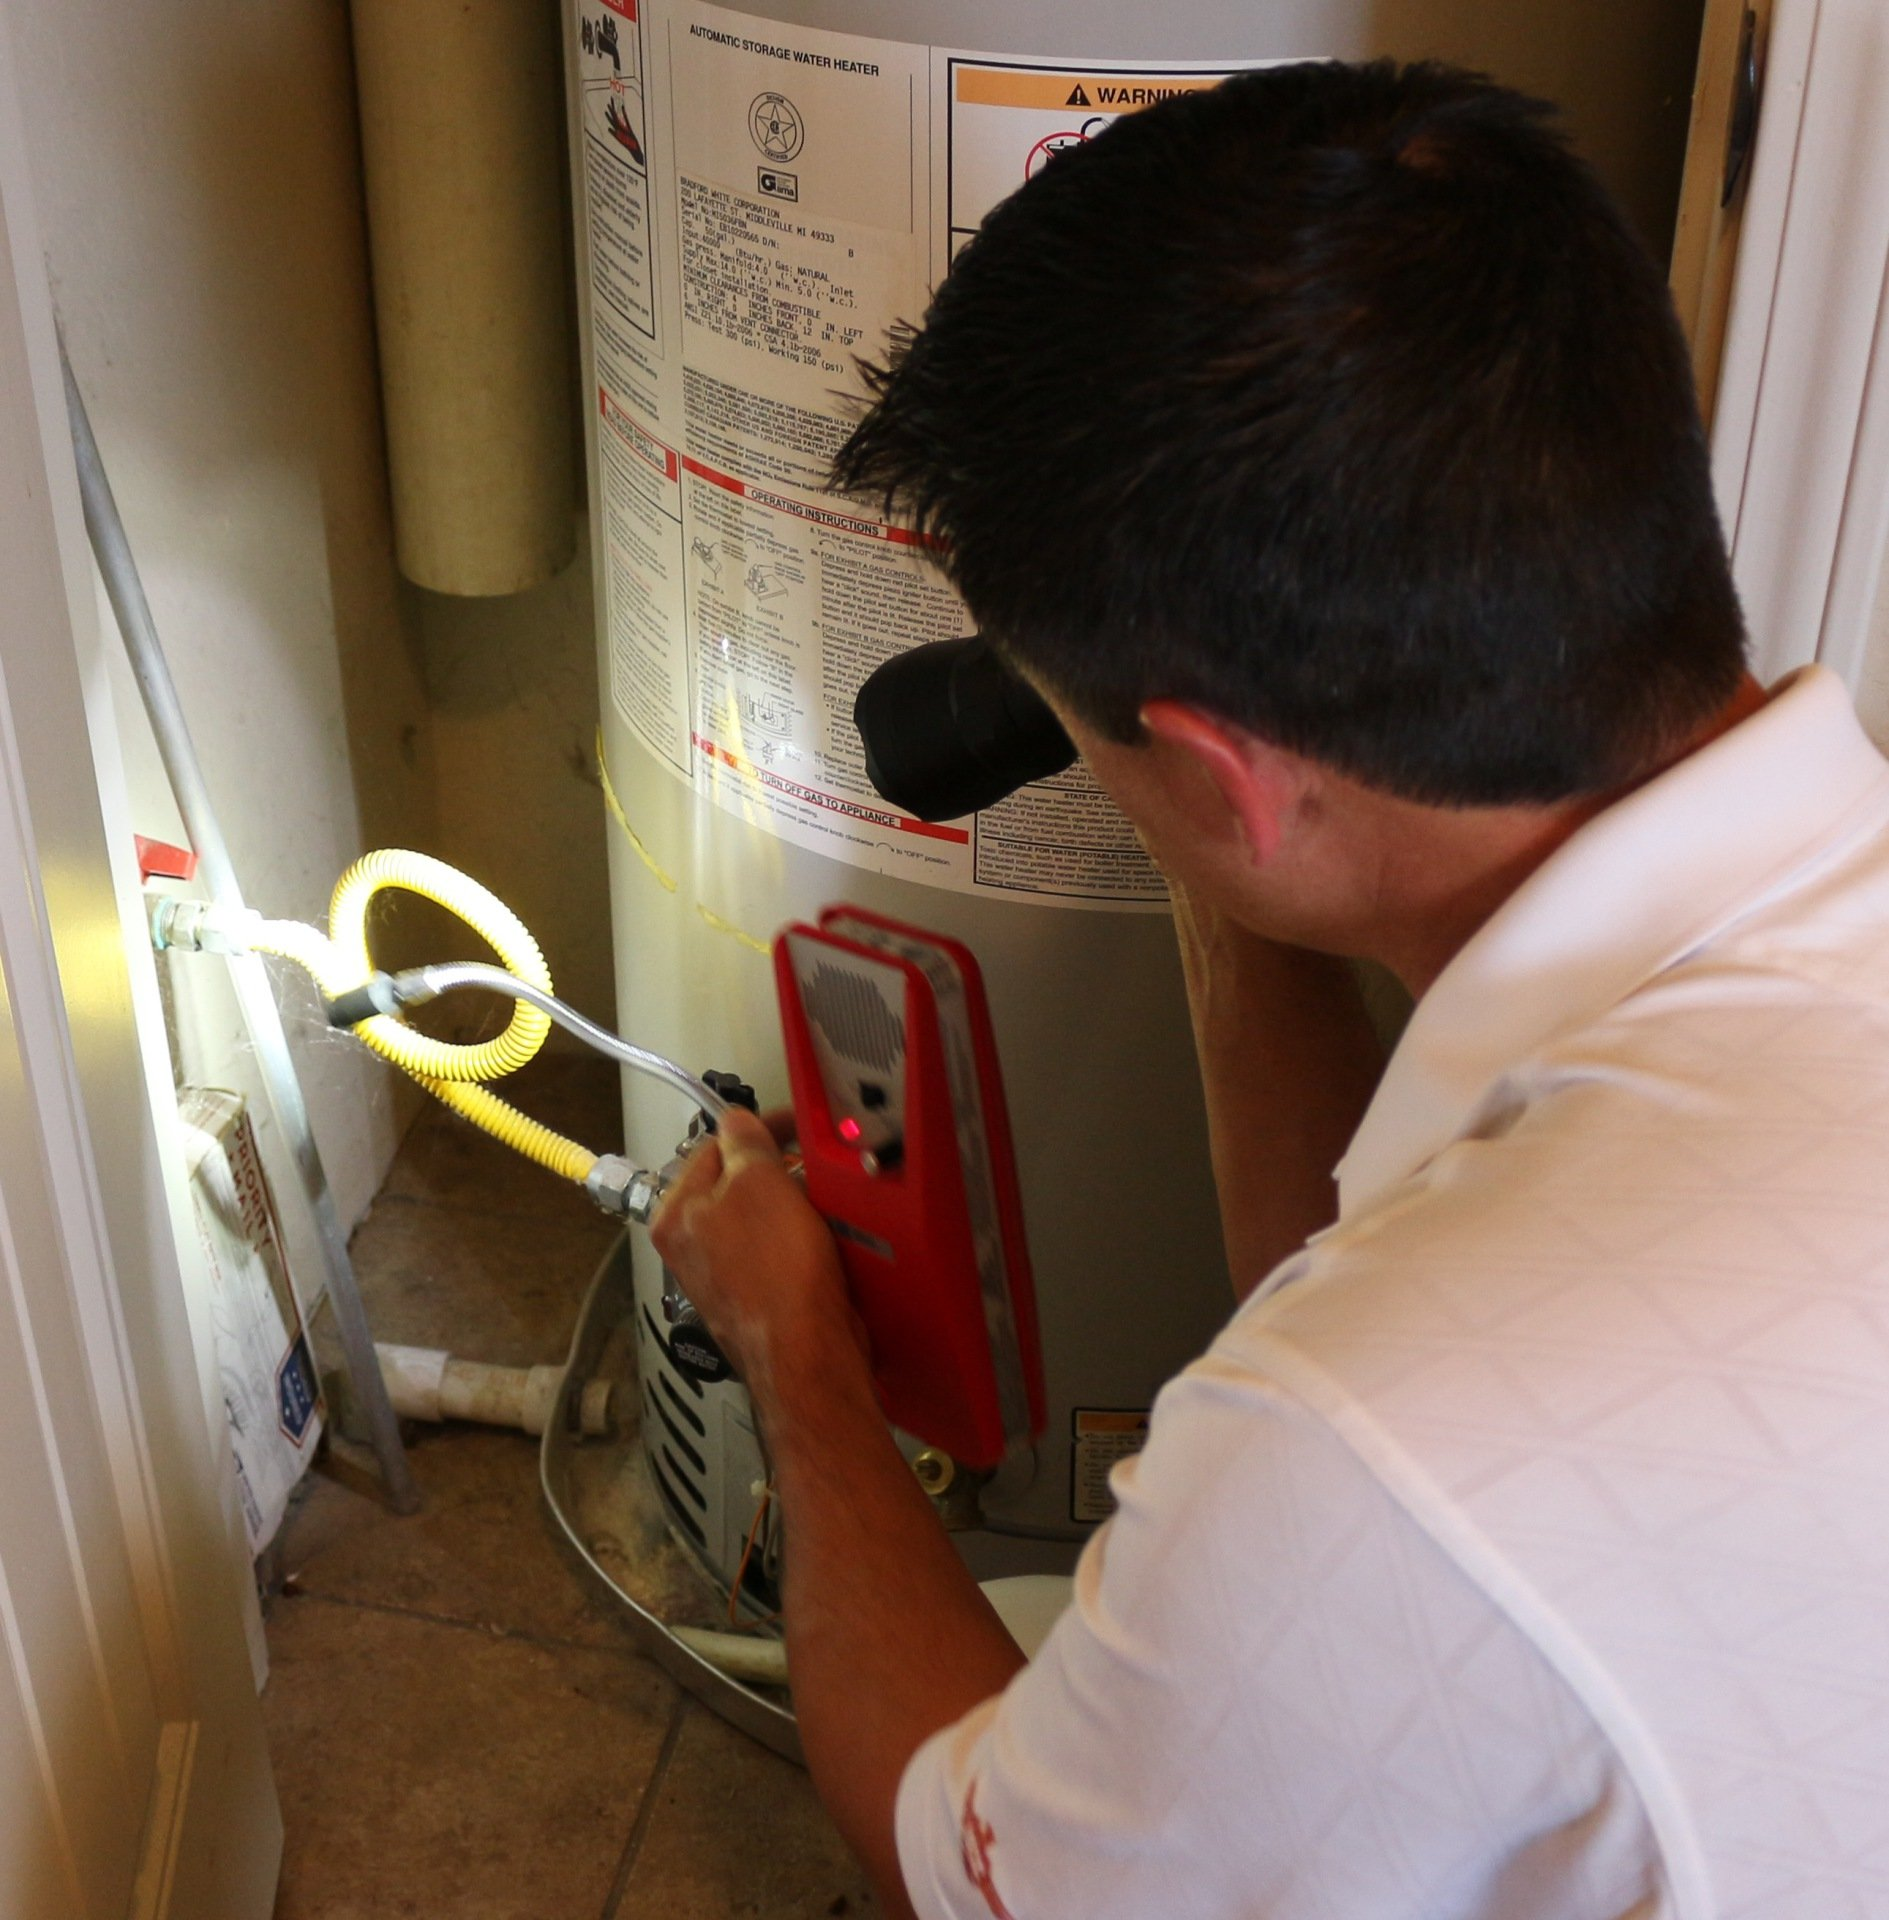 Water Heater / Checking for CO (carbon monoxide) leak with Gas Detector / Keeping your family safe